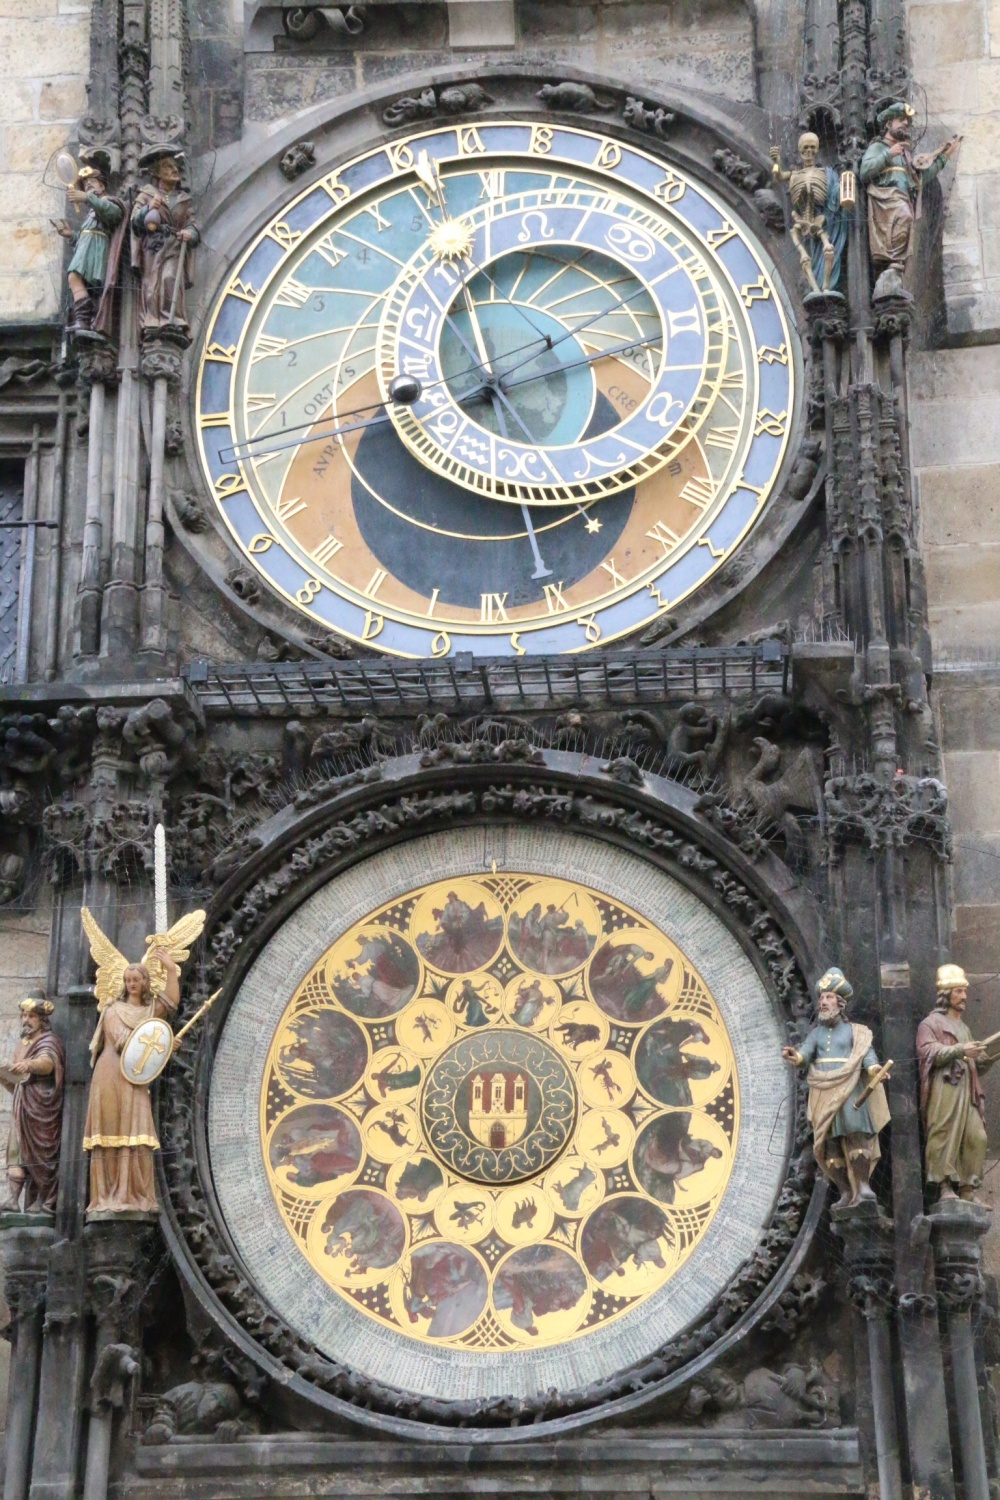 Anatomical clock...not very animate